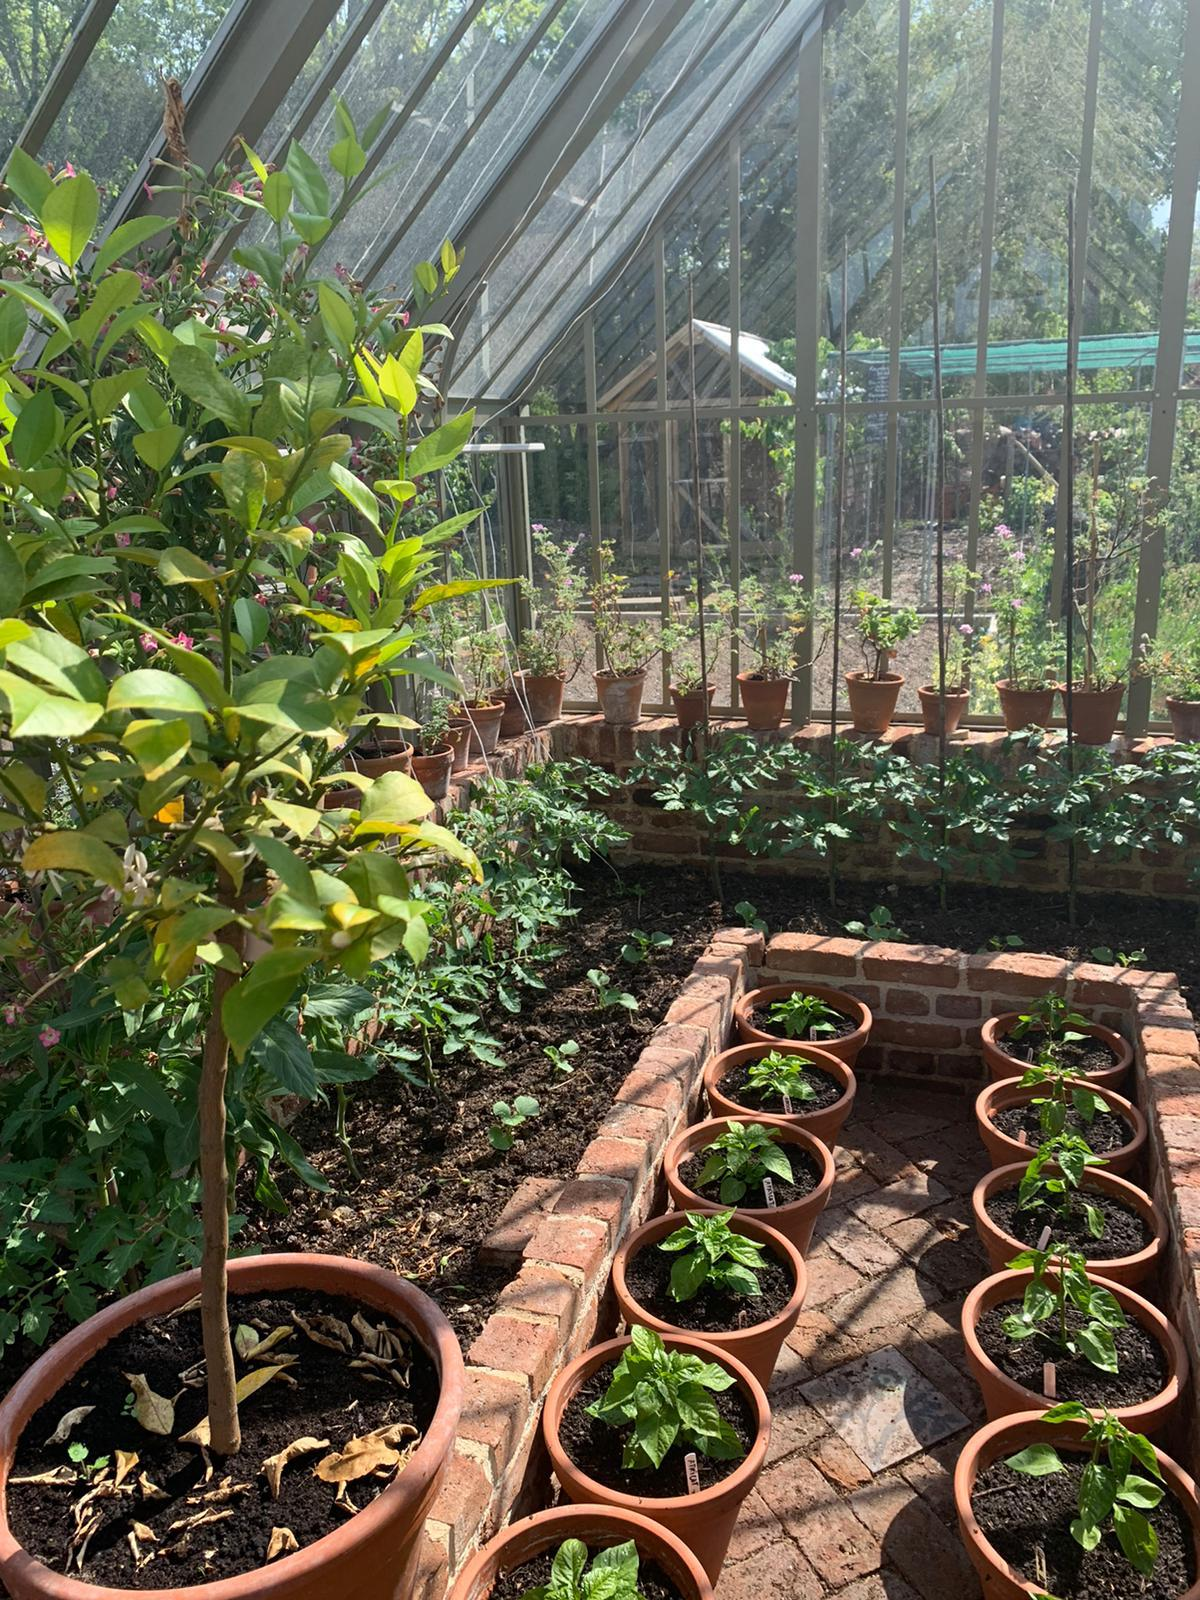 Planting in the greenhouse